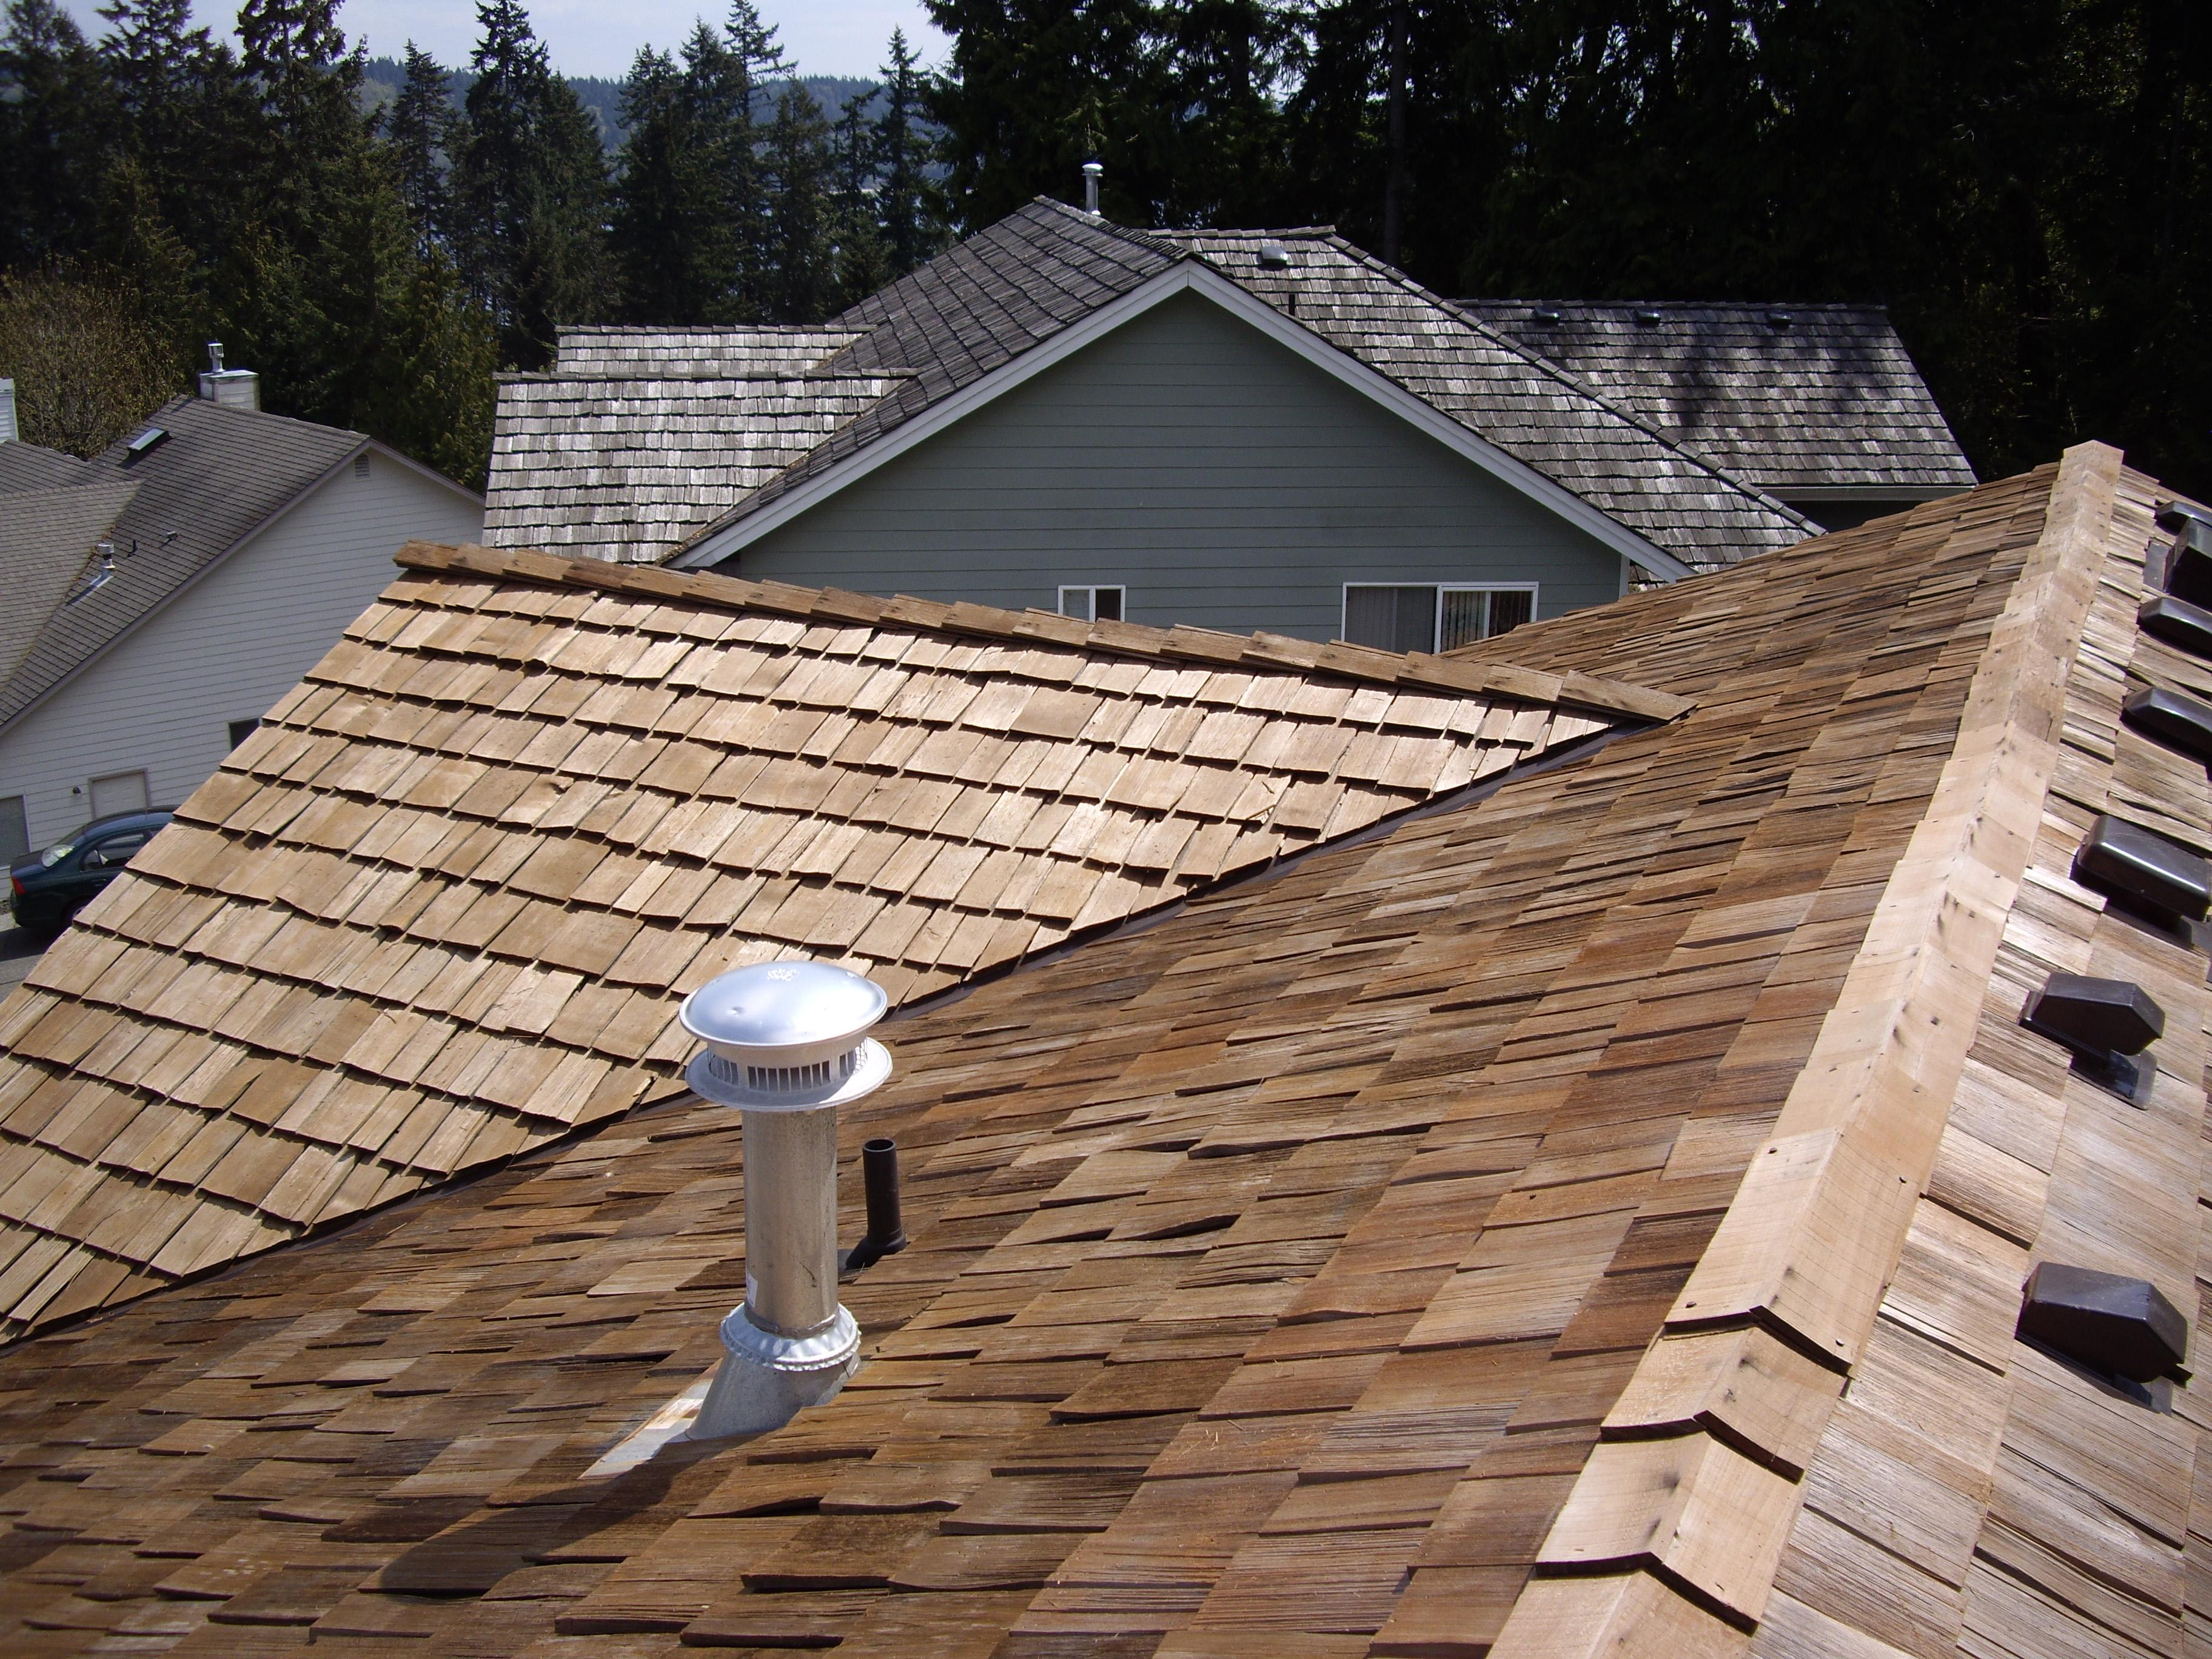 Roof improvement services in Seattle. Roof replacement services providers with excellent portfolio. Try us now